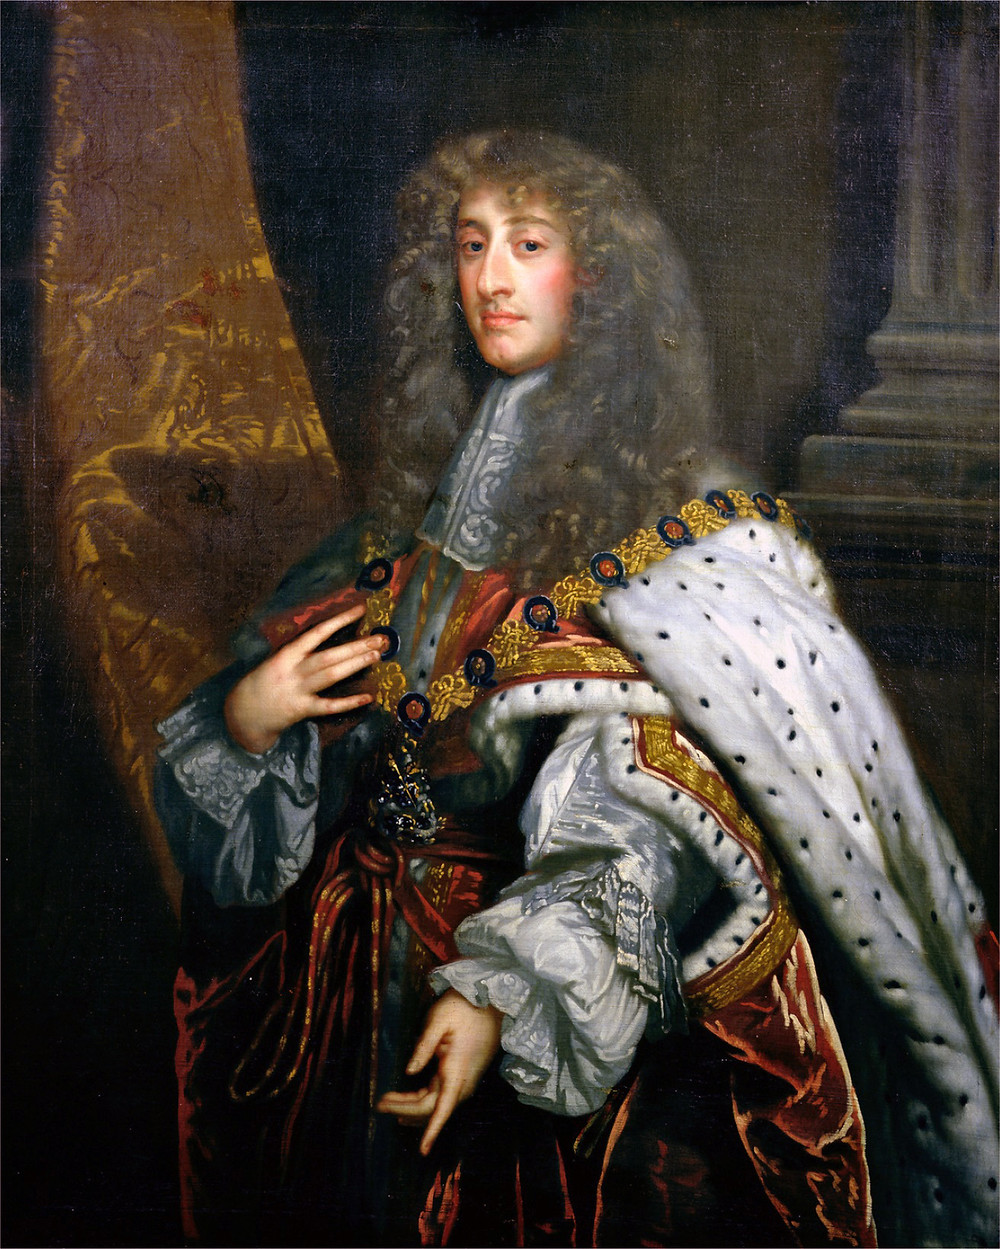 James II, king of England 1685-1688. Stuart king who was deposed during the Glorious revolution by his son-in-law William III, Prince of Orange.